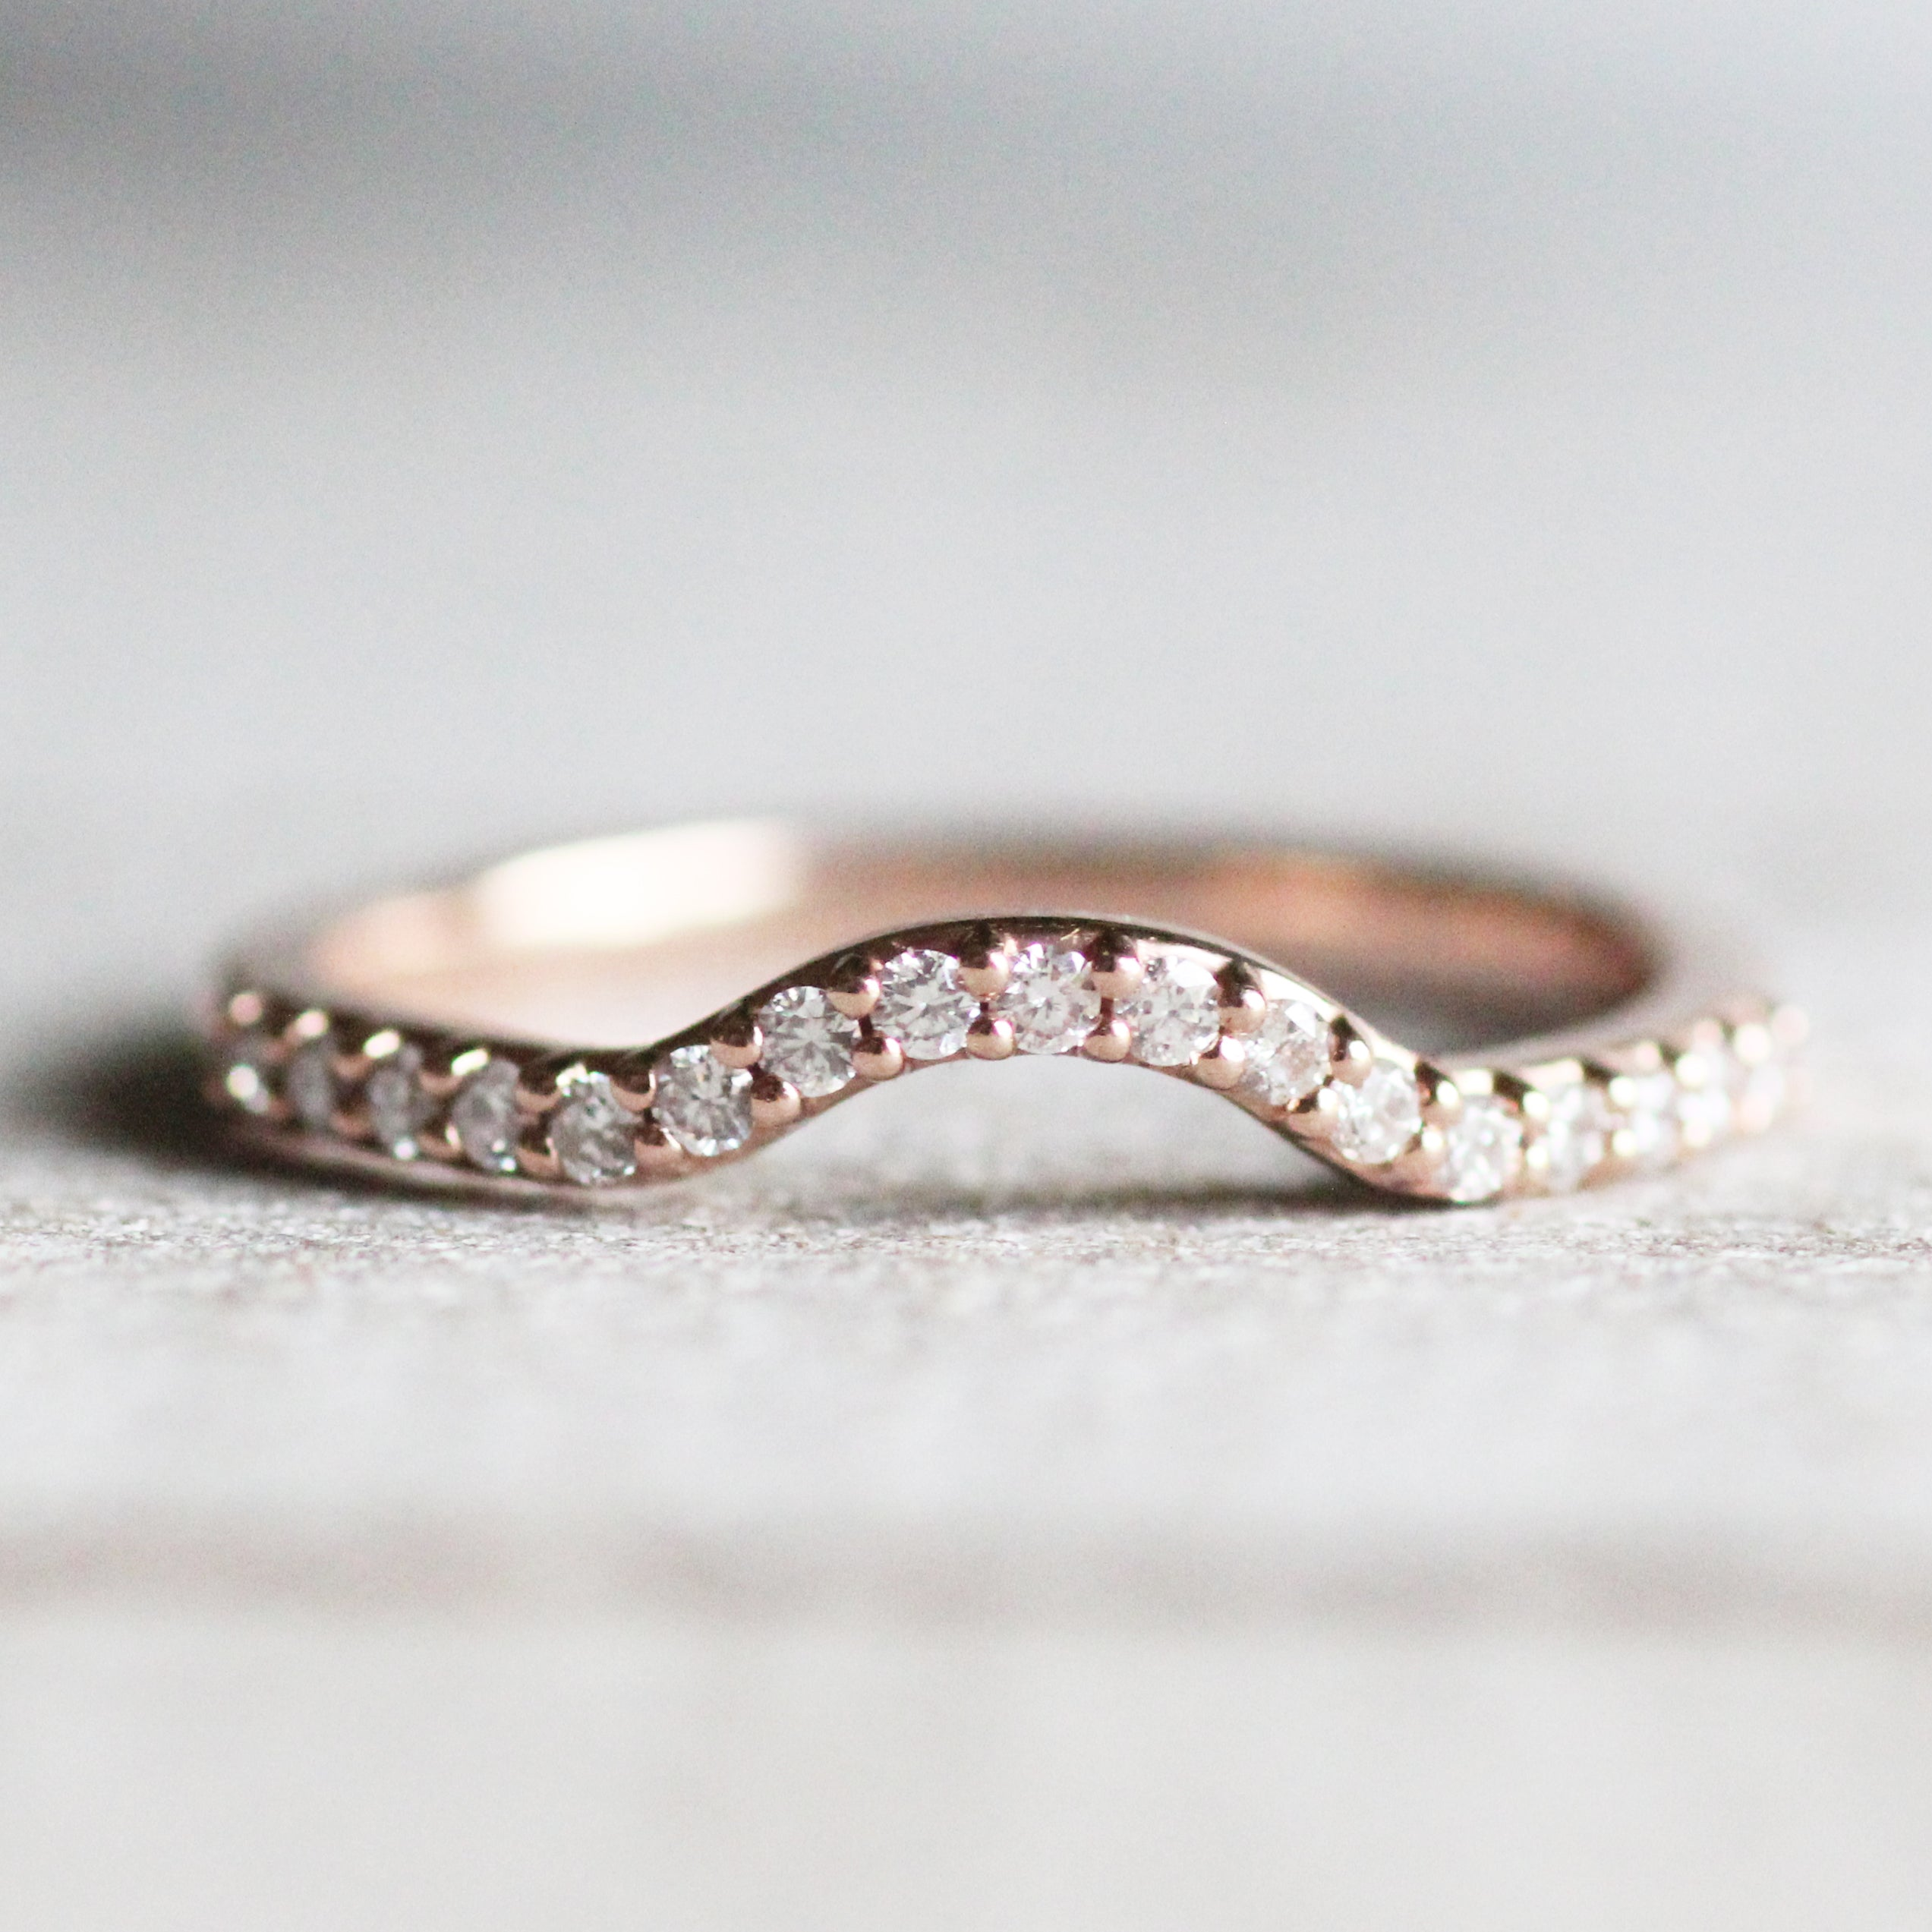 Walsh Wedding Band - Curved Contour Diamond Band - 14K Gold of Choice - Midwinter Co. Alternative Bridal Rings and Modern Fine Jewelry